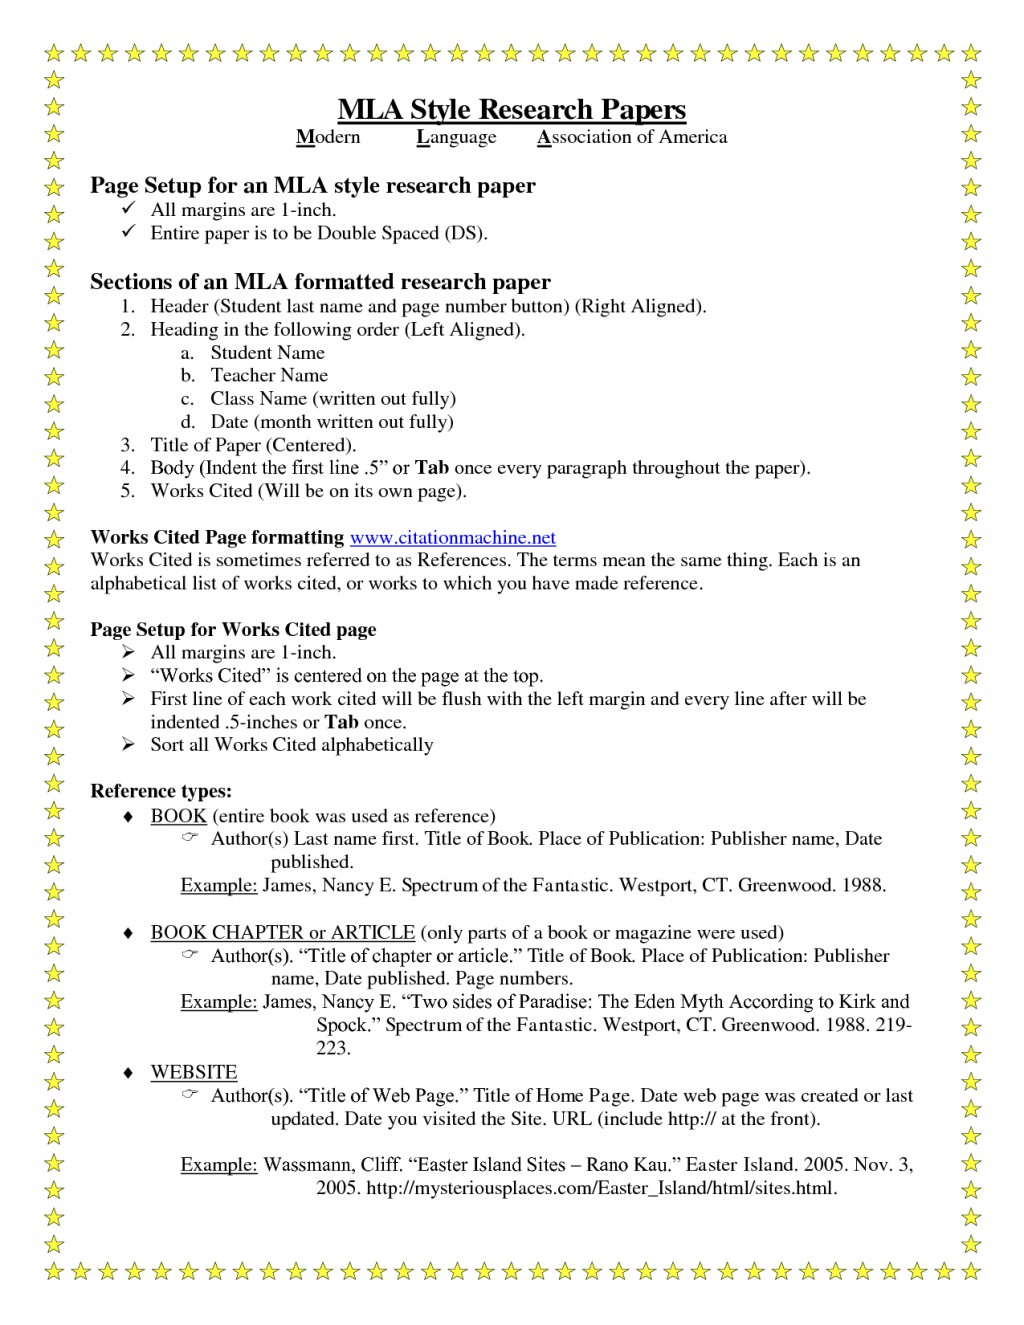 006 Order Of Research Paper Headings In Breathtaking Chronological Sections A Large